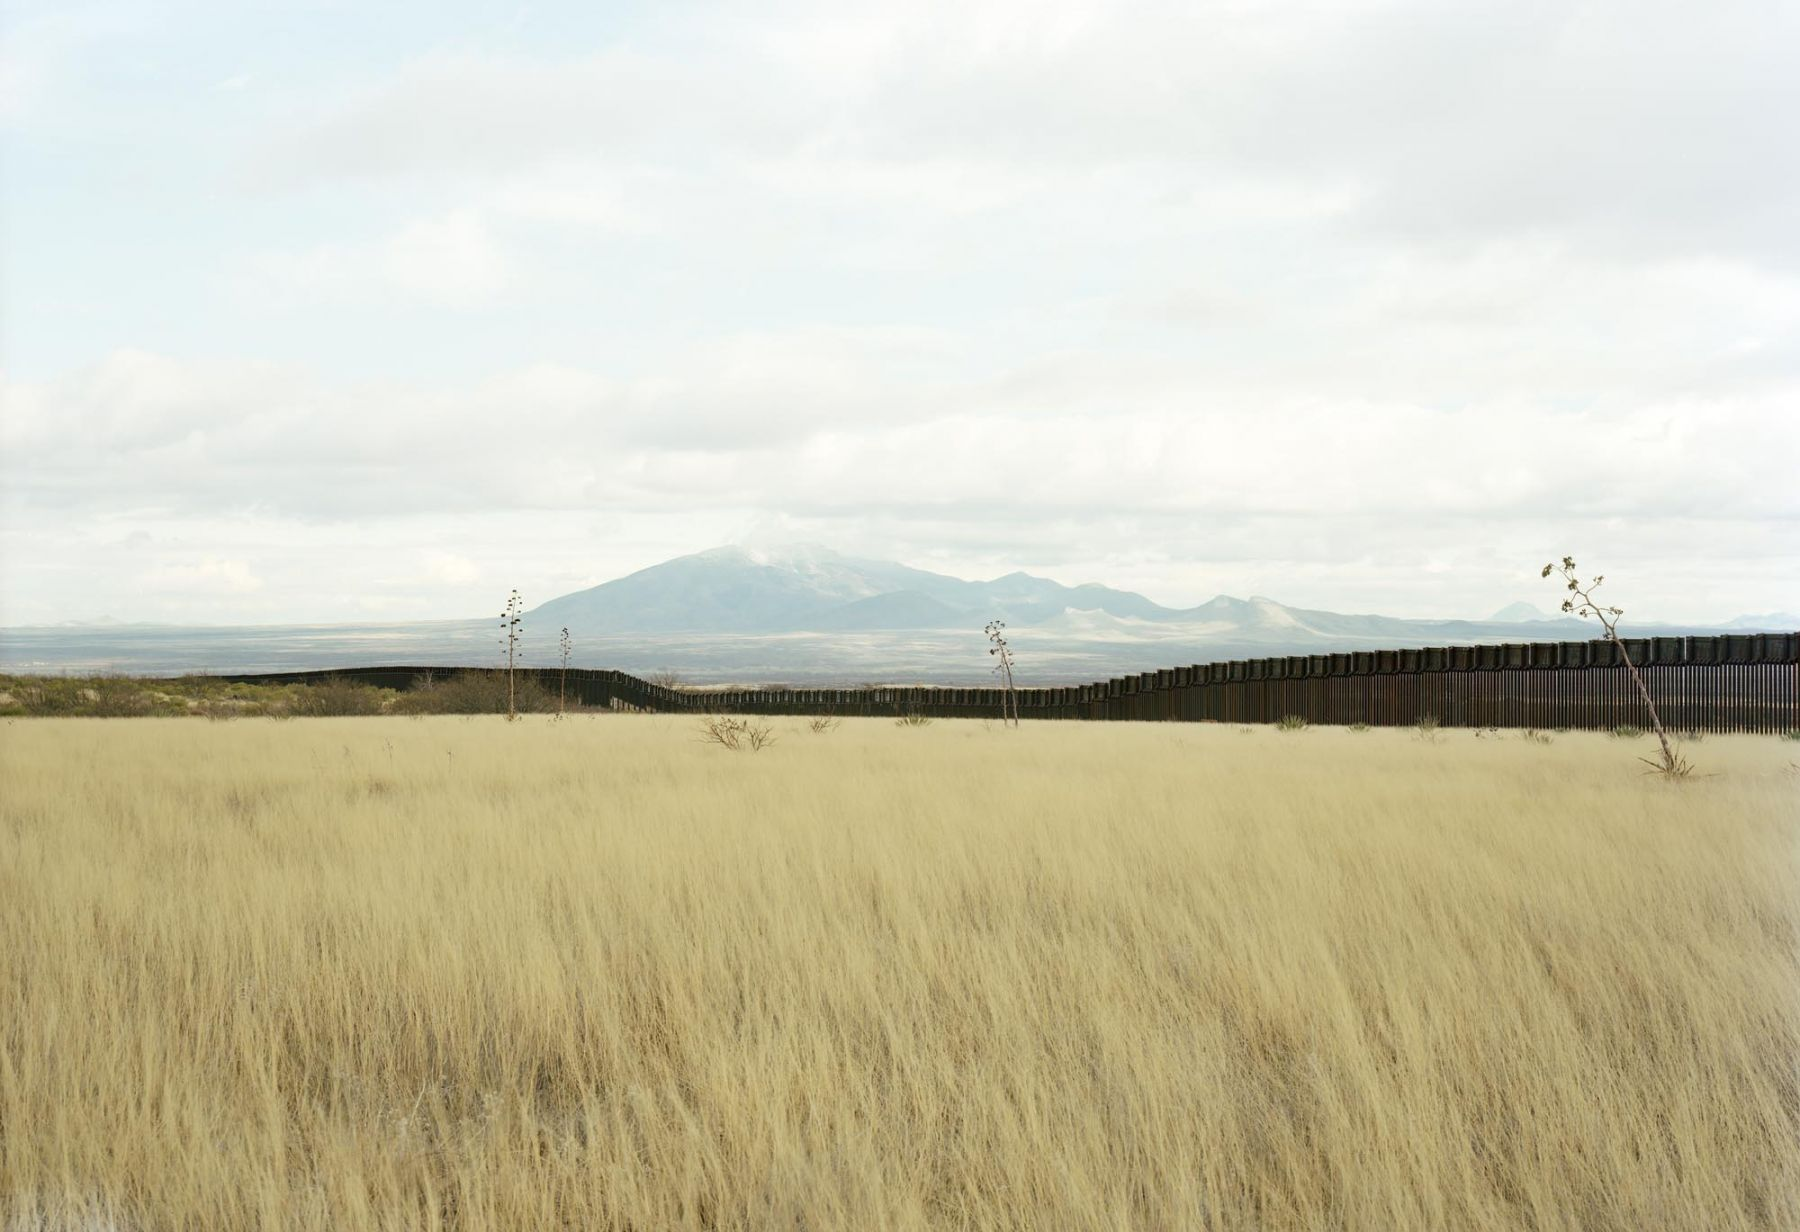 Untitled (Border view south from grasslands), Hereford, Arizona, 2010, 39 x 55 or 55 x 77 inch chromogenic print